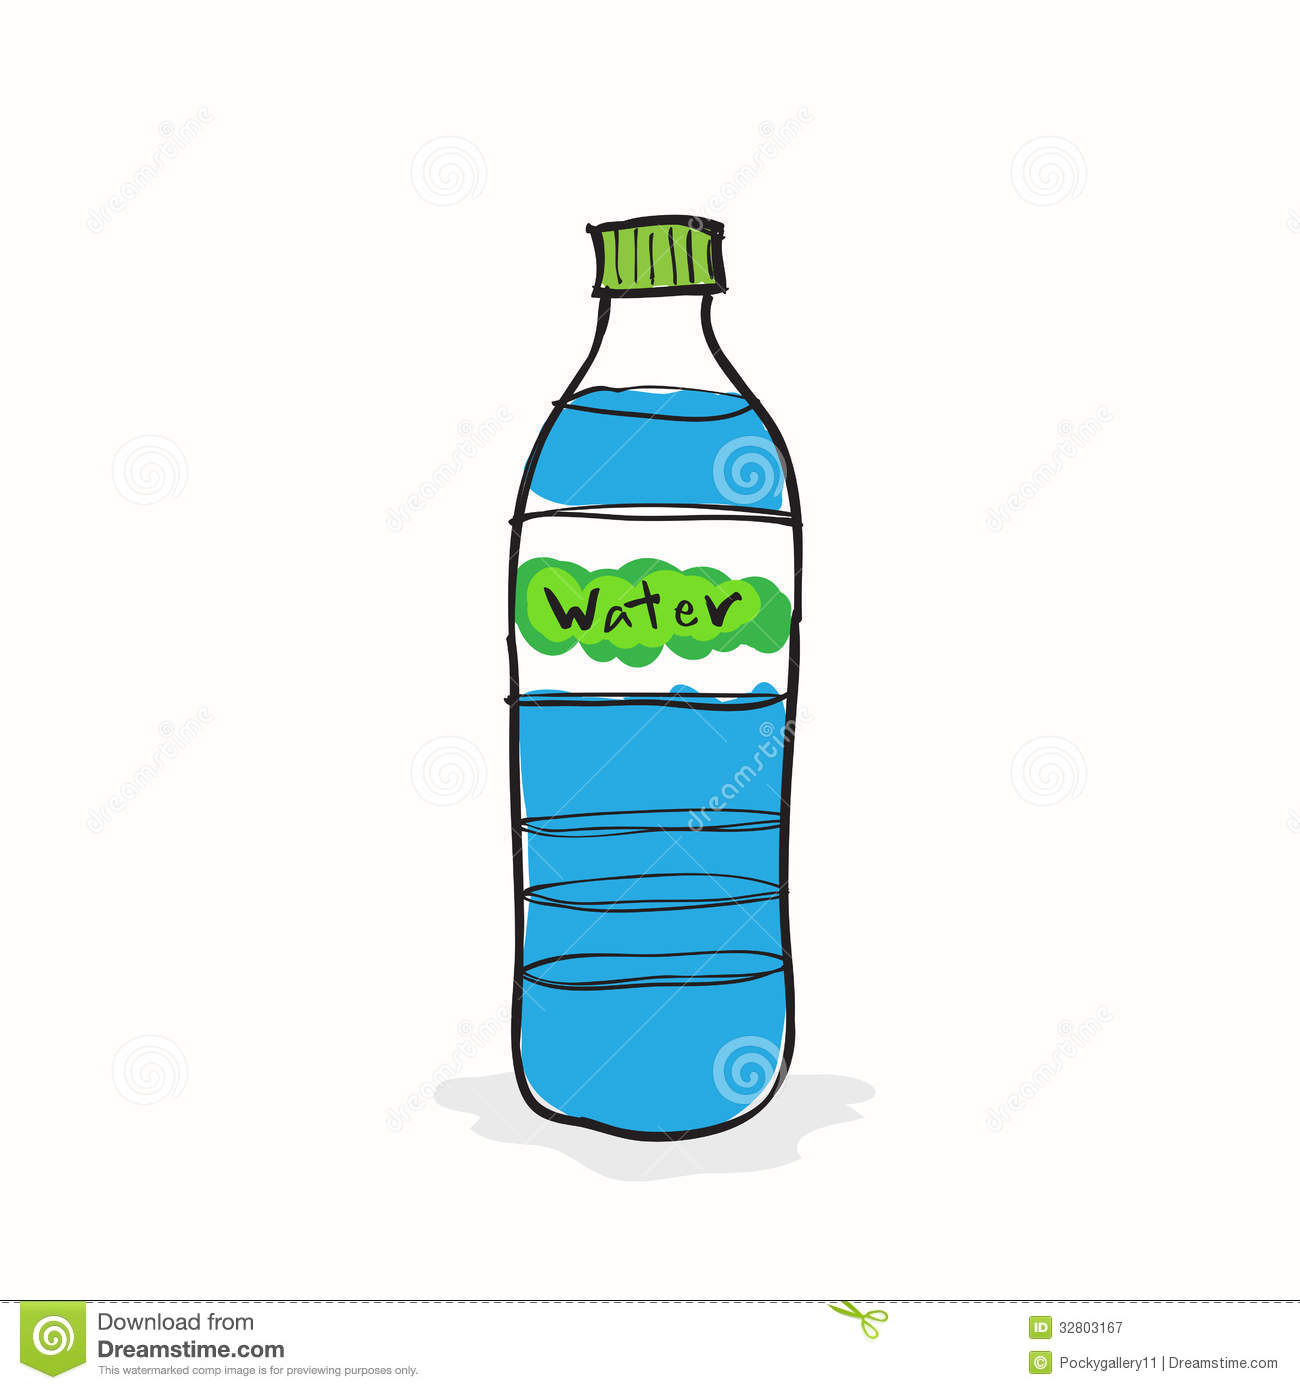 Water bottle coloring page water bottle coloring page clipart panda - Water 20bottle 20clipart